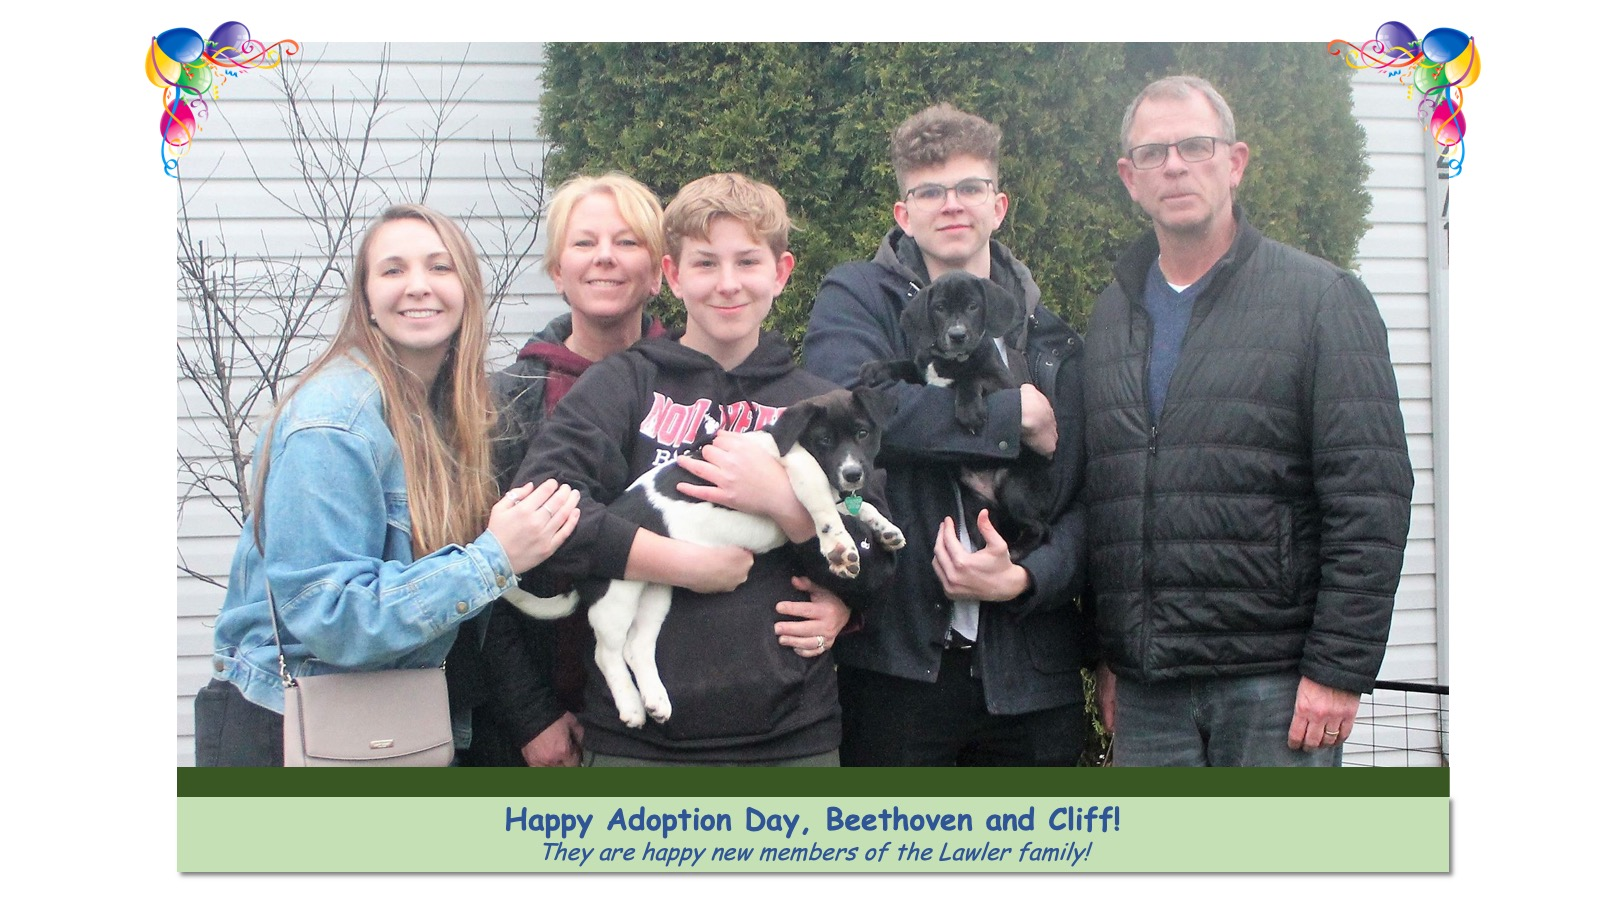 Beethoven-Cliff_Adoption_Photo_2019.jpg